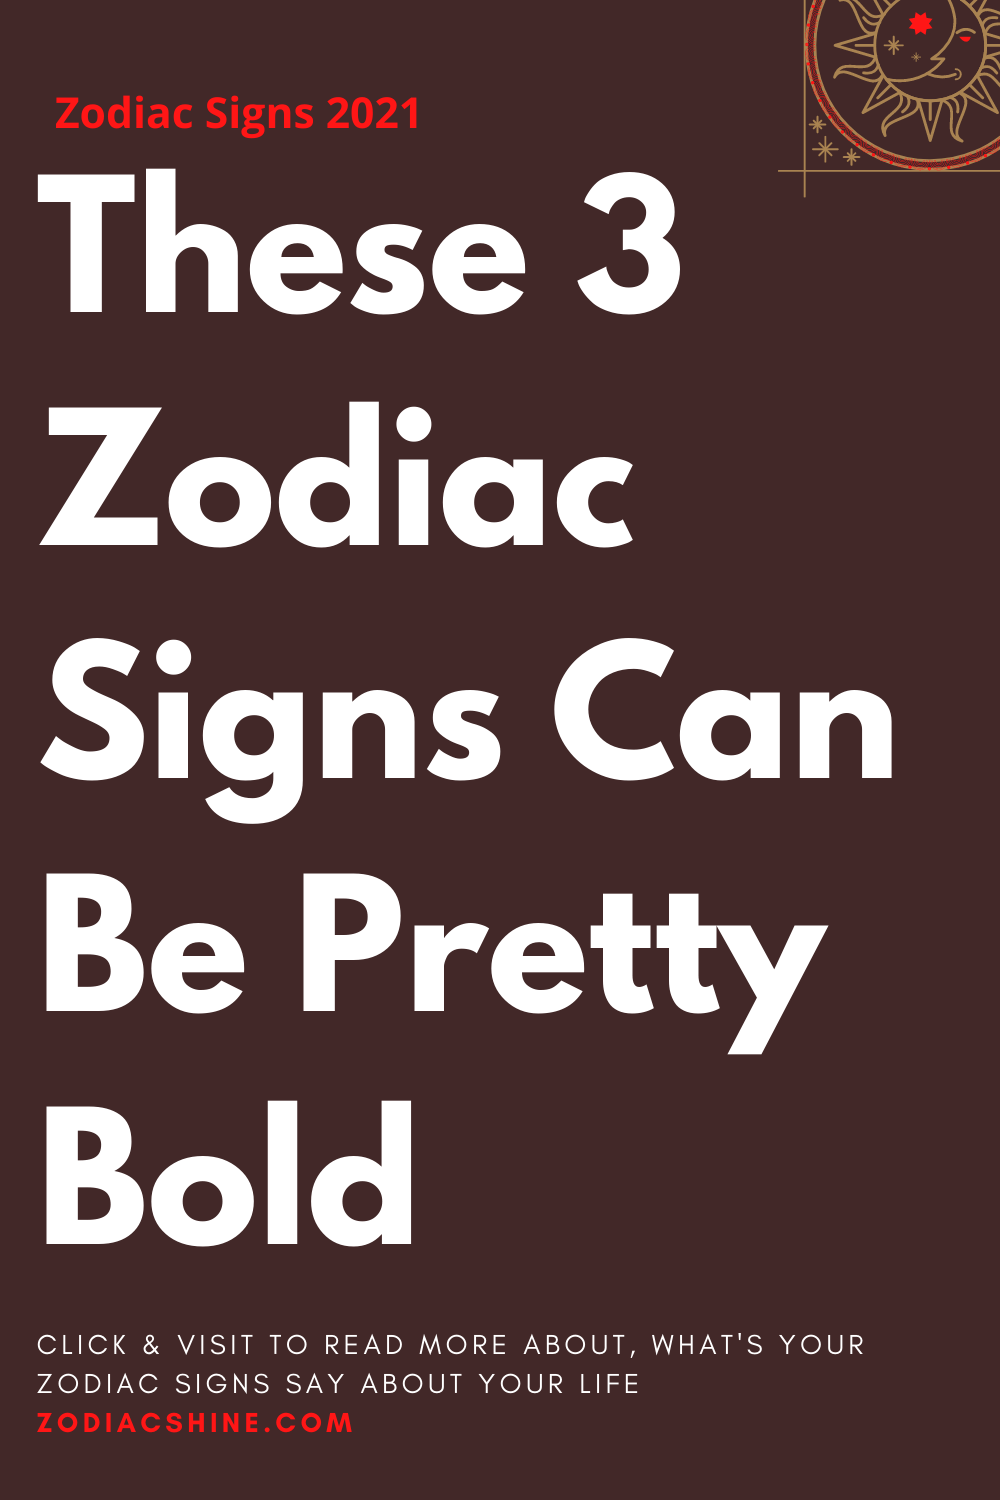 These 3 Zodiac Signs Can Be Pretty Bold